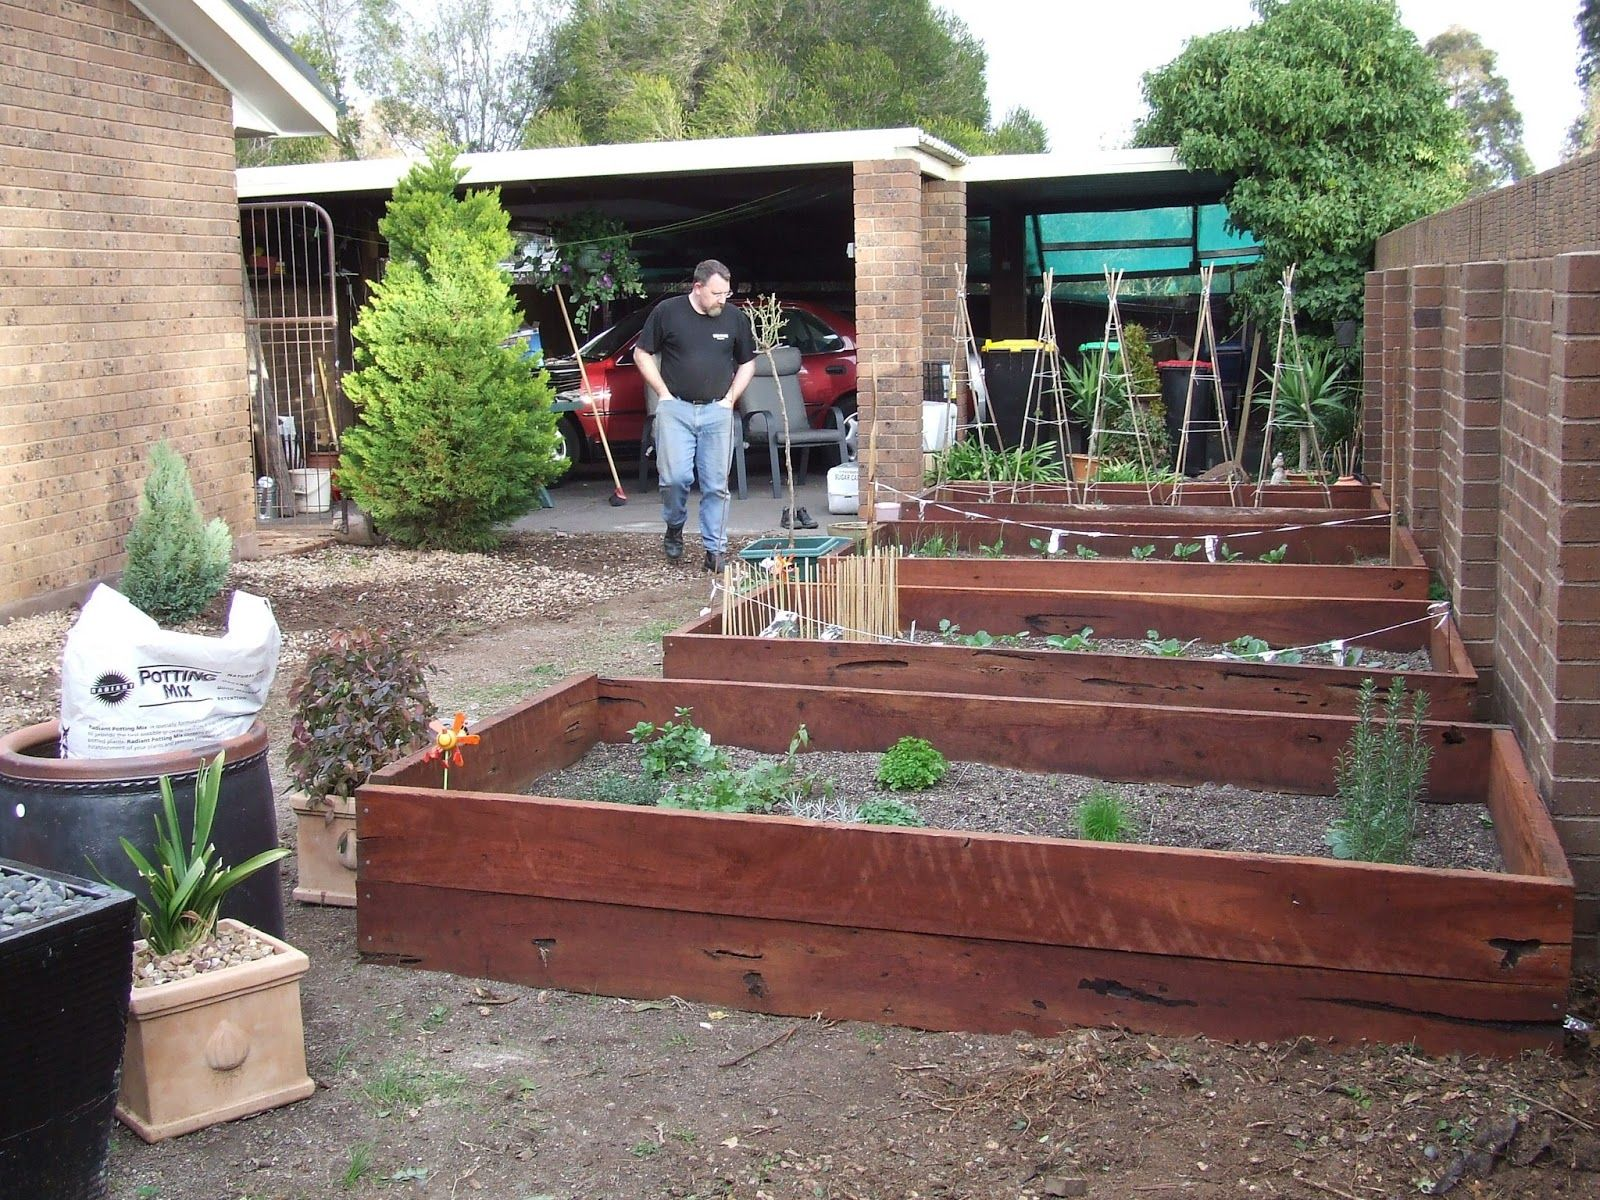 My mother in law Pam, recently asked how I made the garden beds in my veggie patch. This is the story of how I did it! In late April 2007, I began to plan an organic vegetable garden for one side of our house. We had a garden (if you could call it that), that [Continue Reading …]